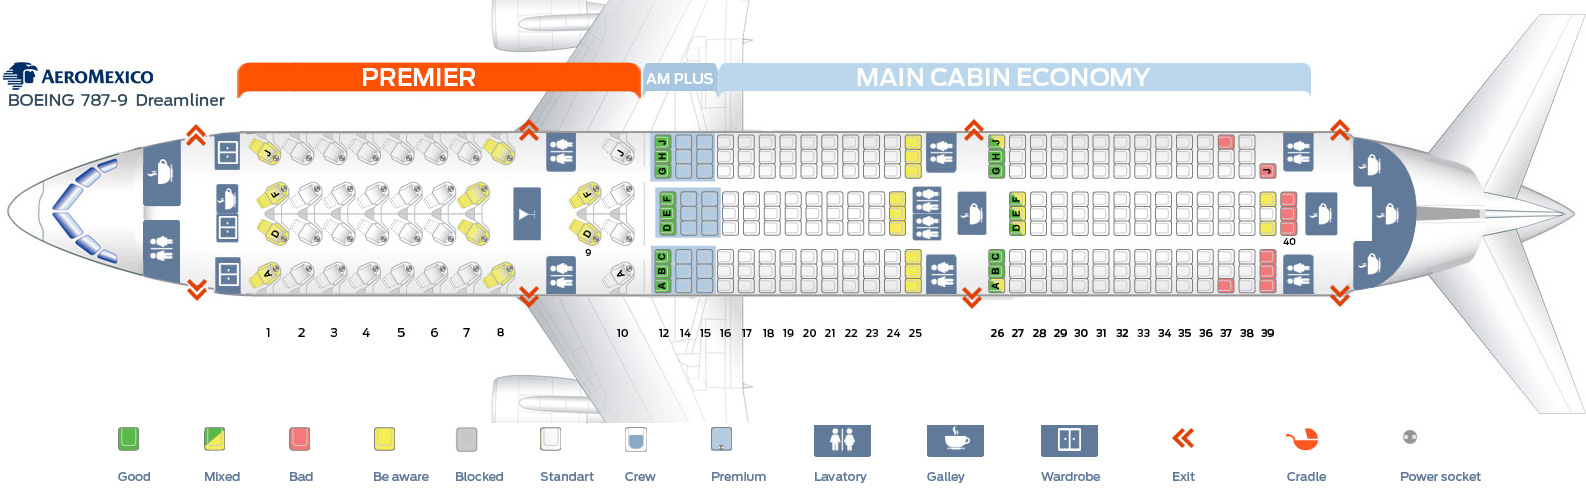 Seat map Boeing 787-9 Aeromexico